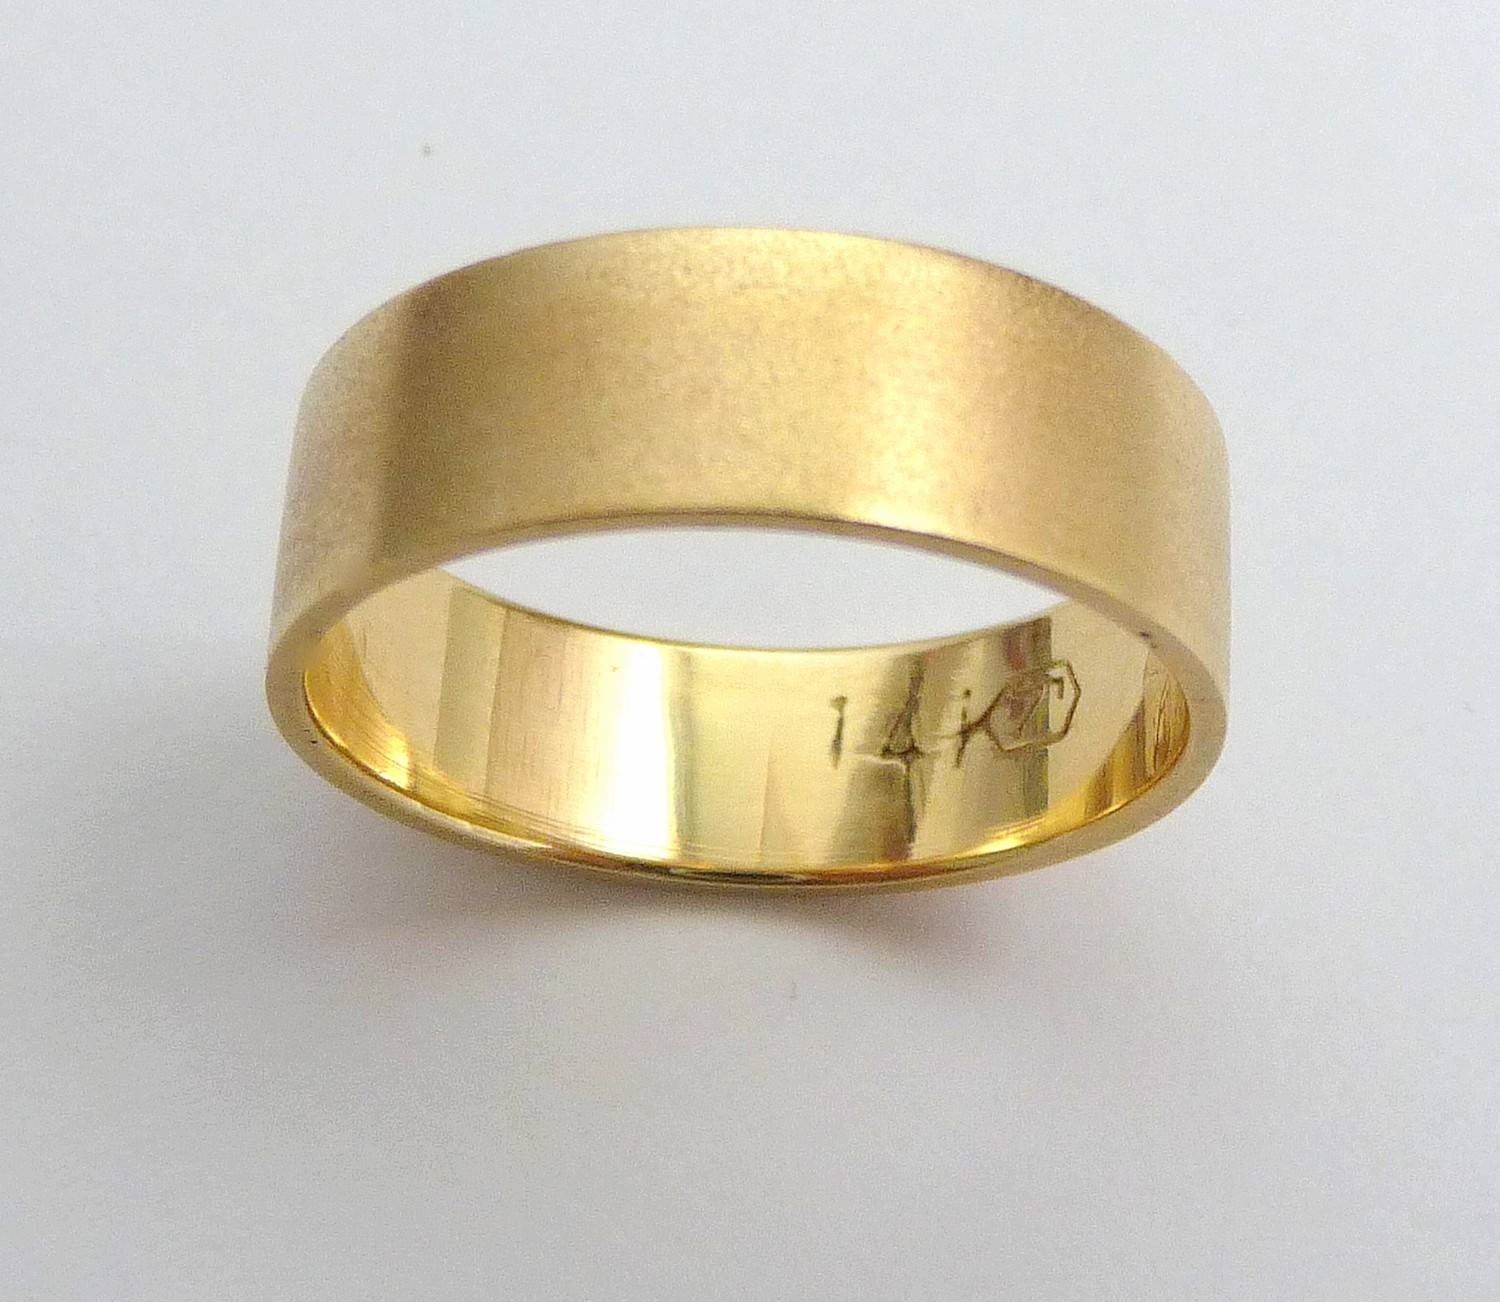 Gold Wedding Band Men Wedding Ring Flat With Sandblast Finish With Gold Male Wedding Rings (View 7 of 15)